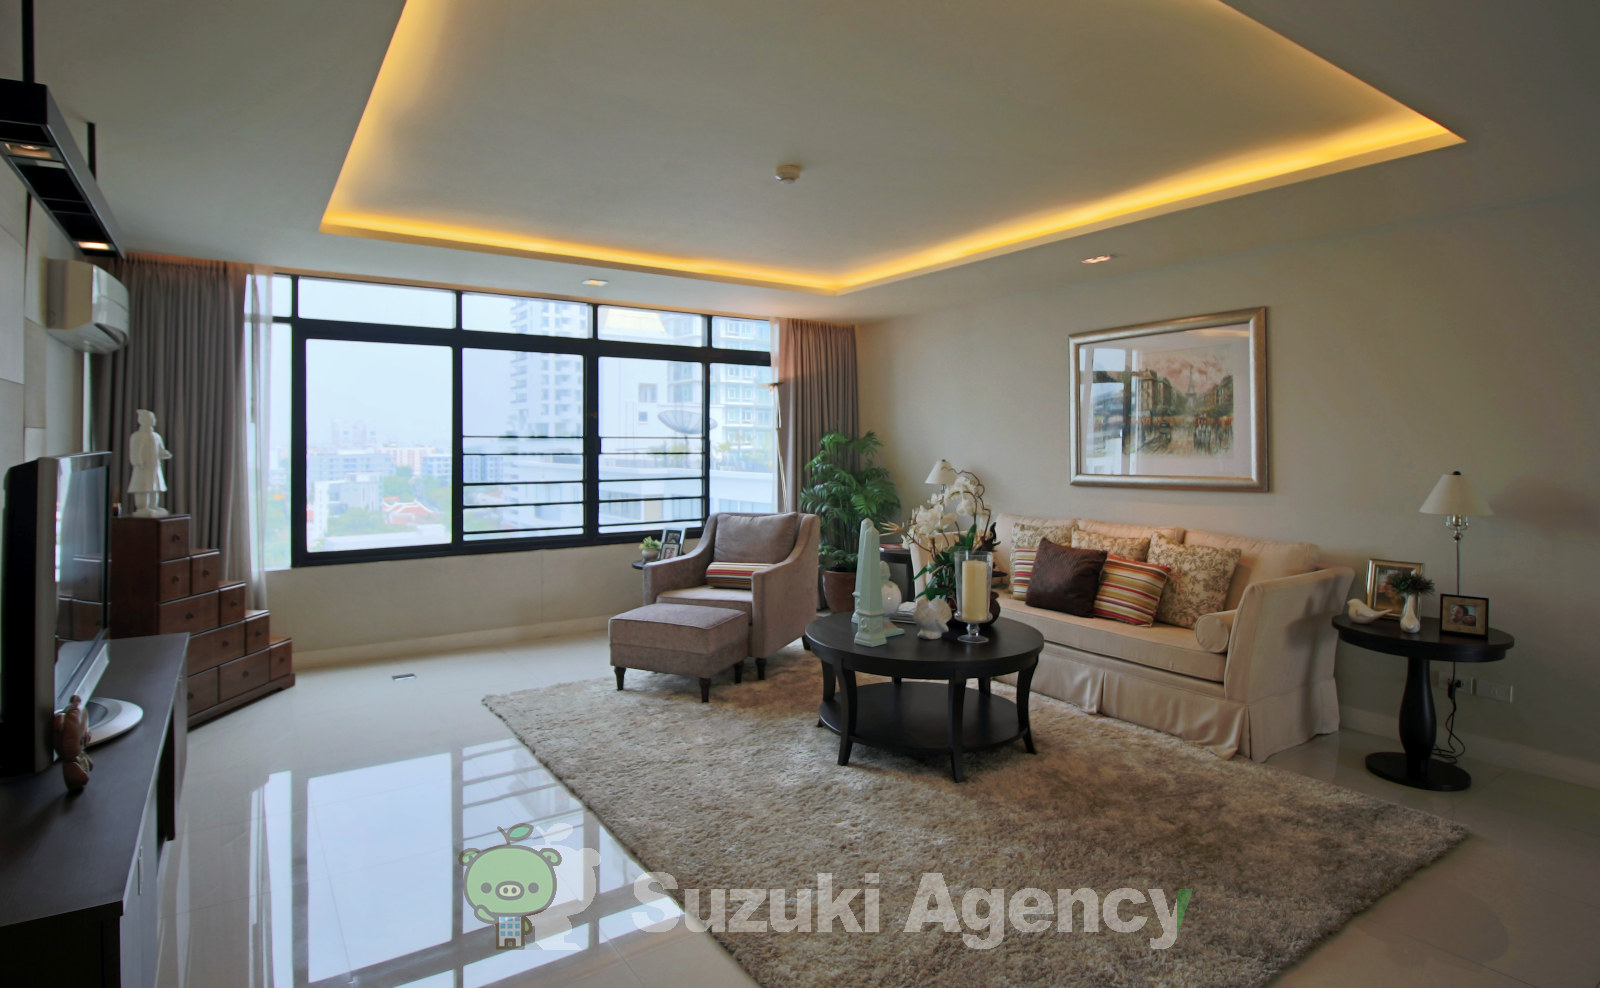 Romsai Residence:3Bed Room Photos No.2